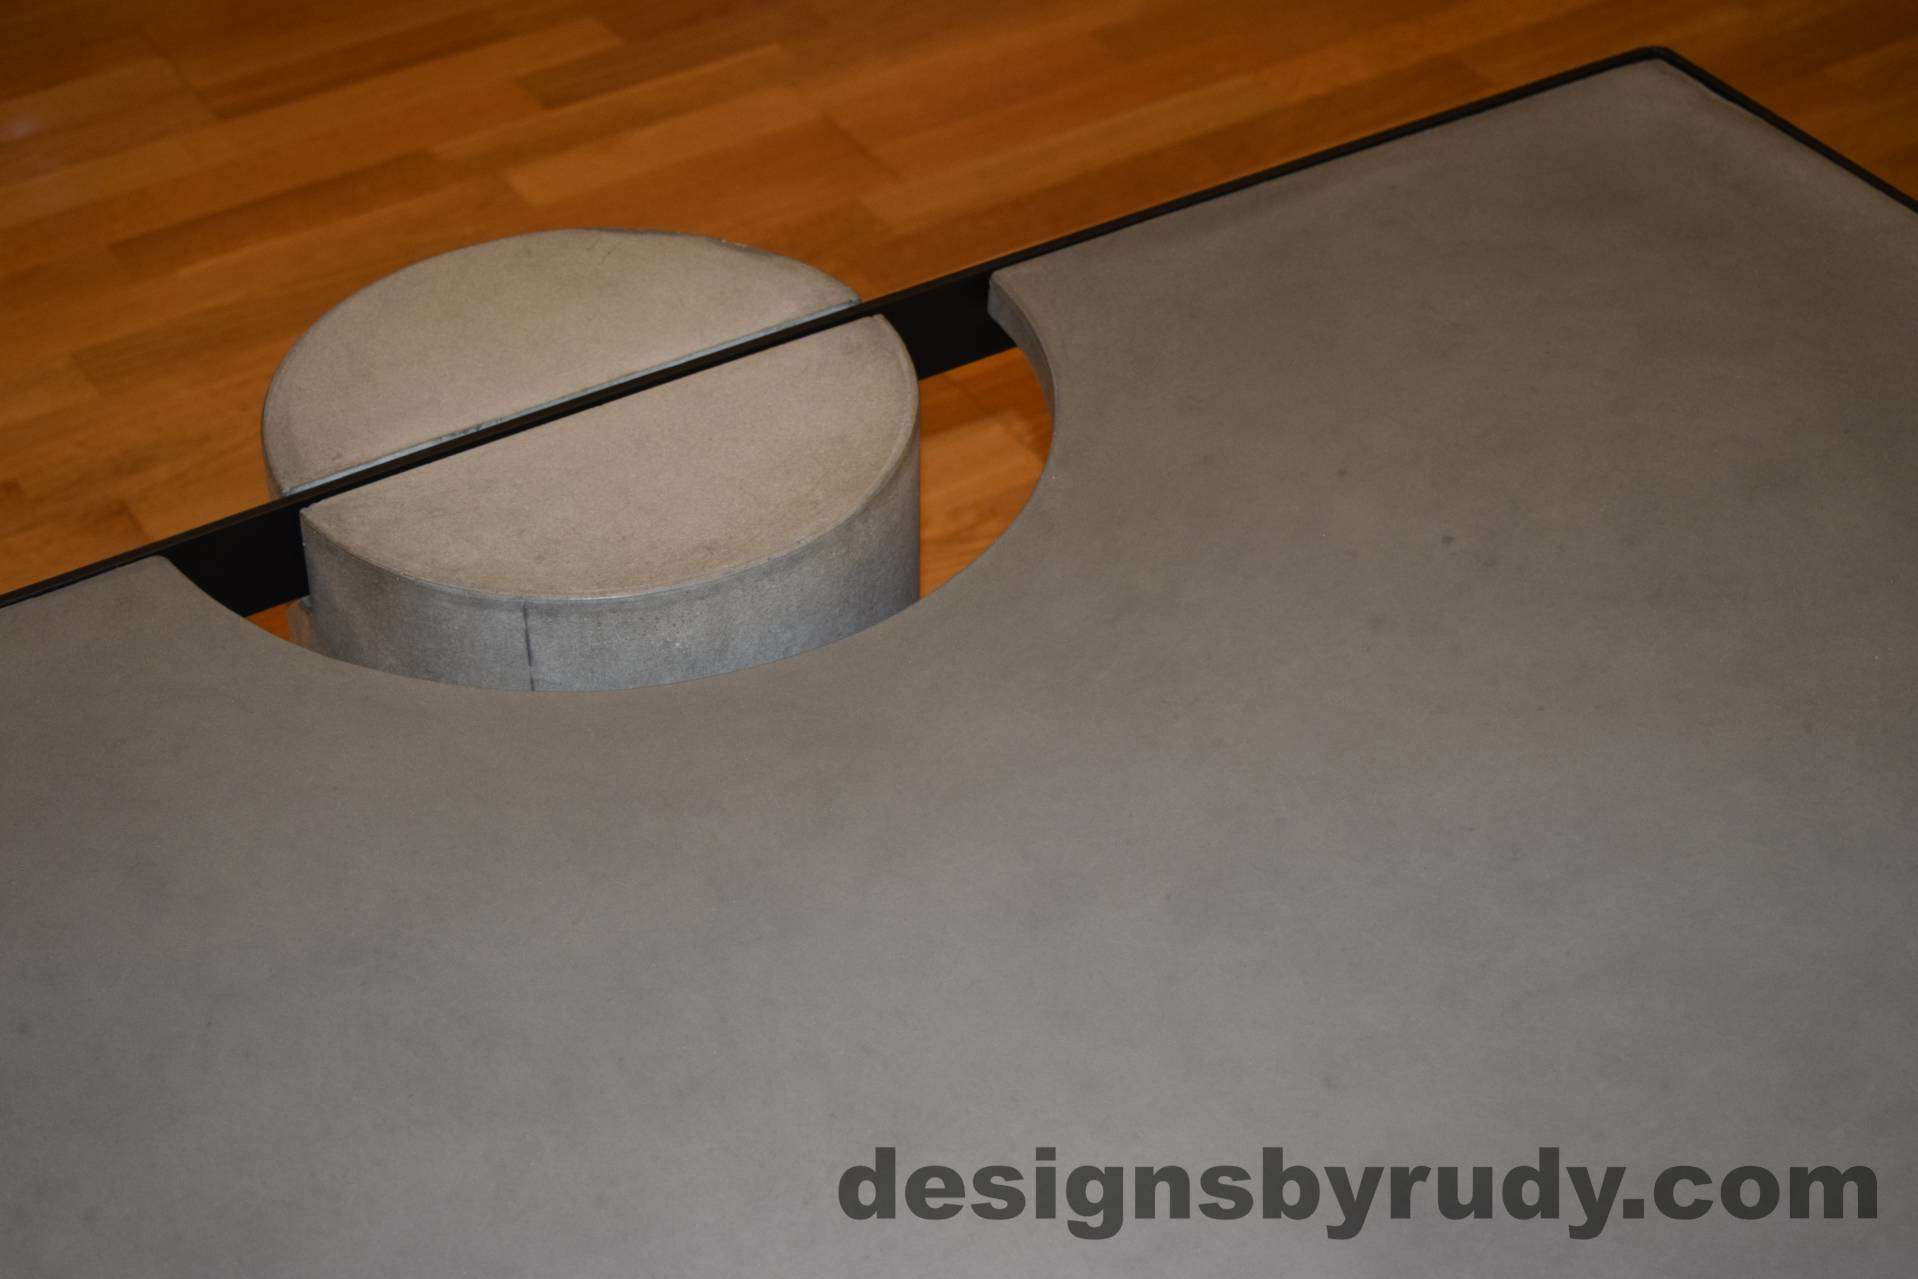 Gray Concrete Coffee Table, Black Steel Frame, top angle view of a concrete leg and top steel frame joint, Designs by Rudy